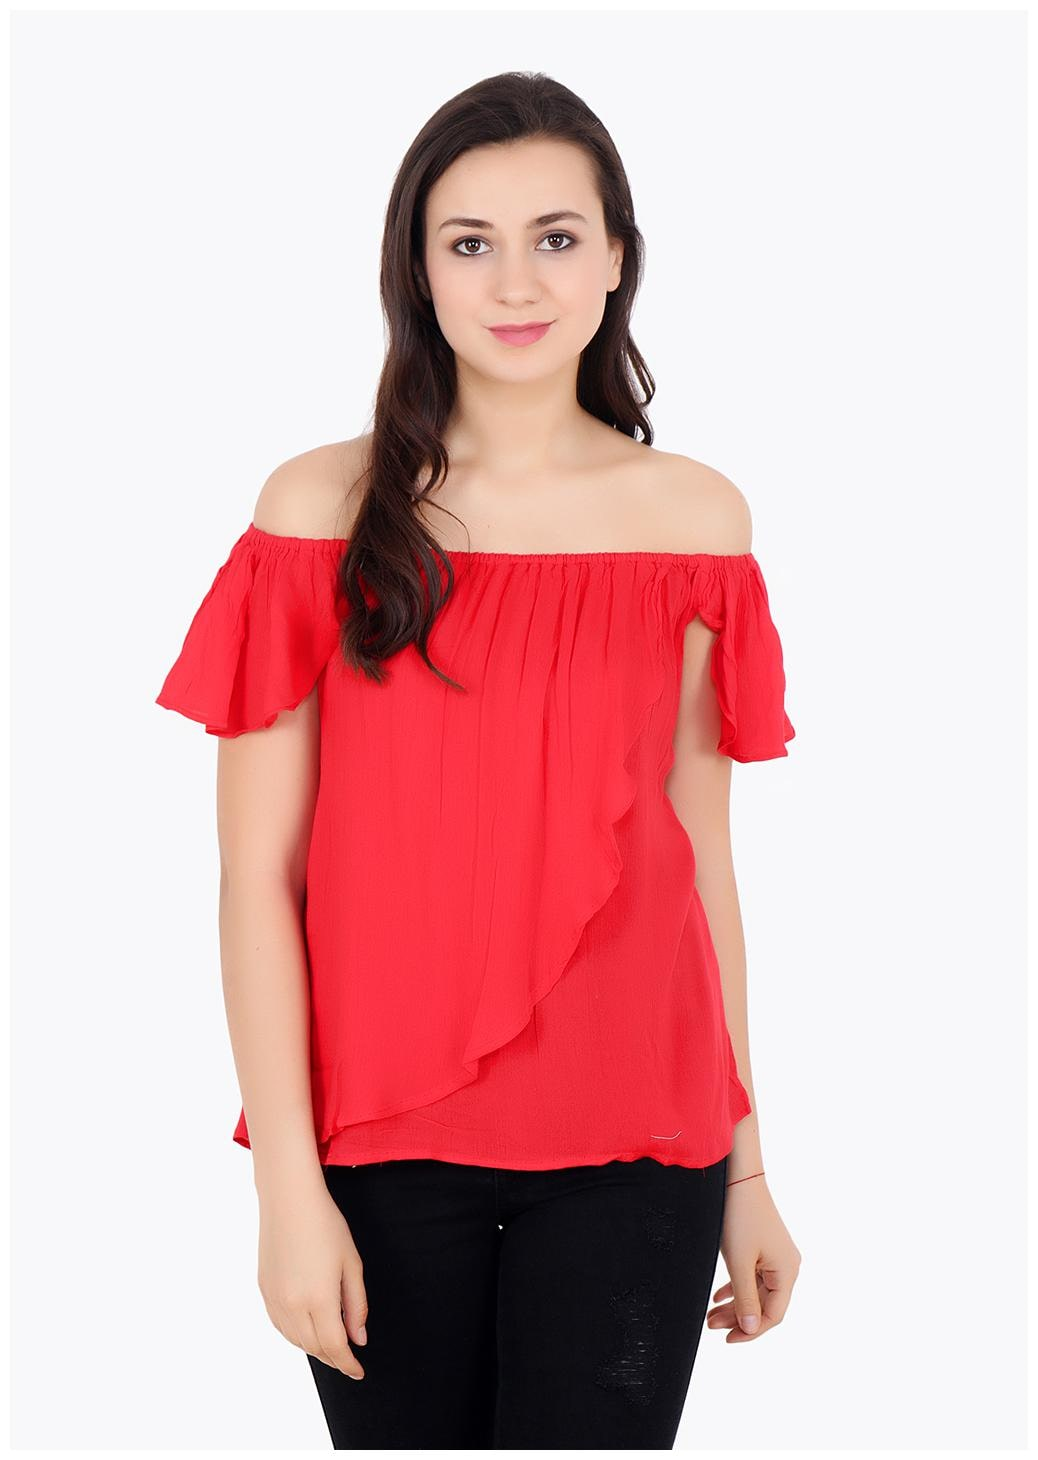 https://assetscdn1.paytm.com/images/catalog/product/A/AP/APPCATION-RED-SKANC313048561C68F/a_0..jpg